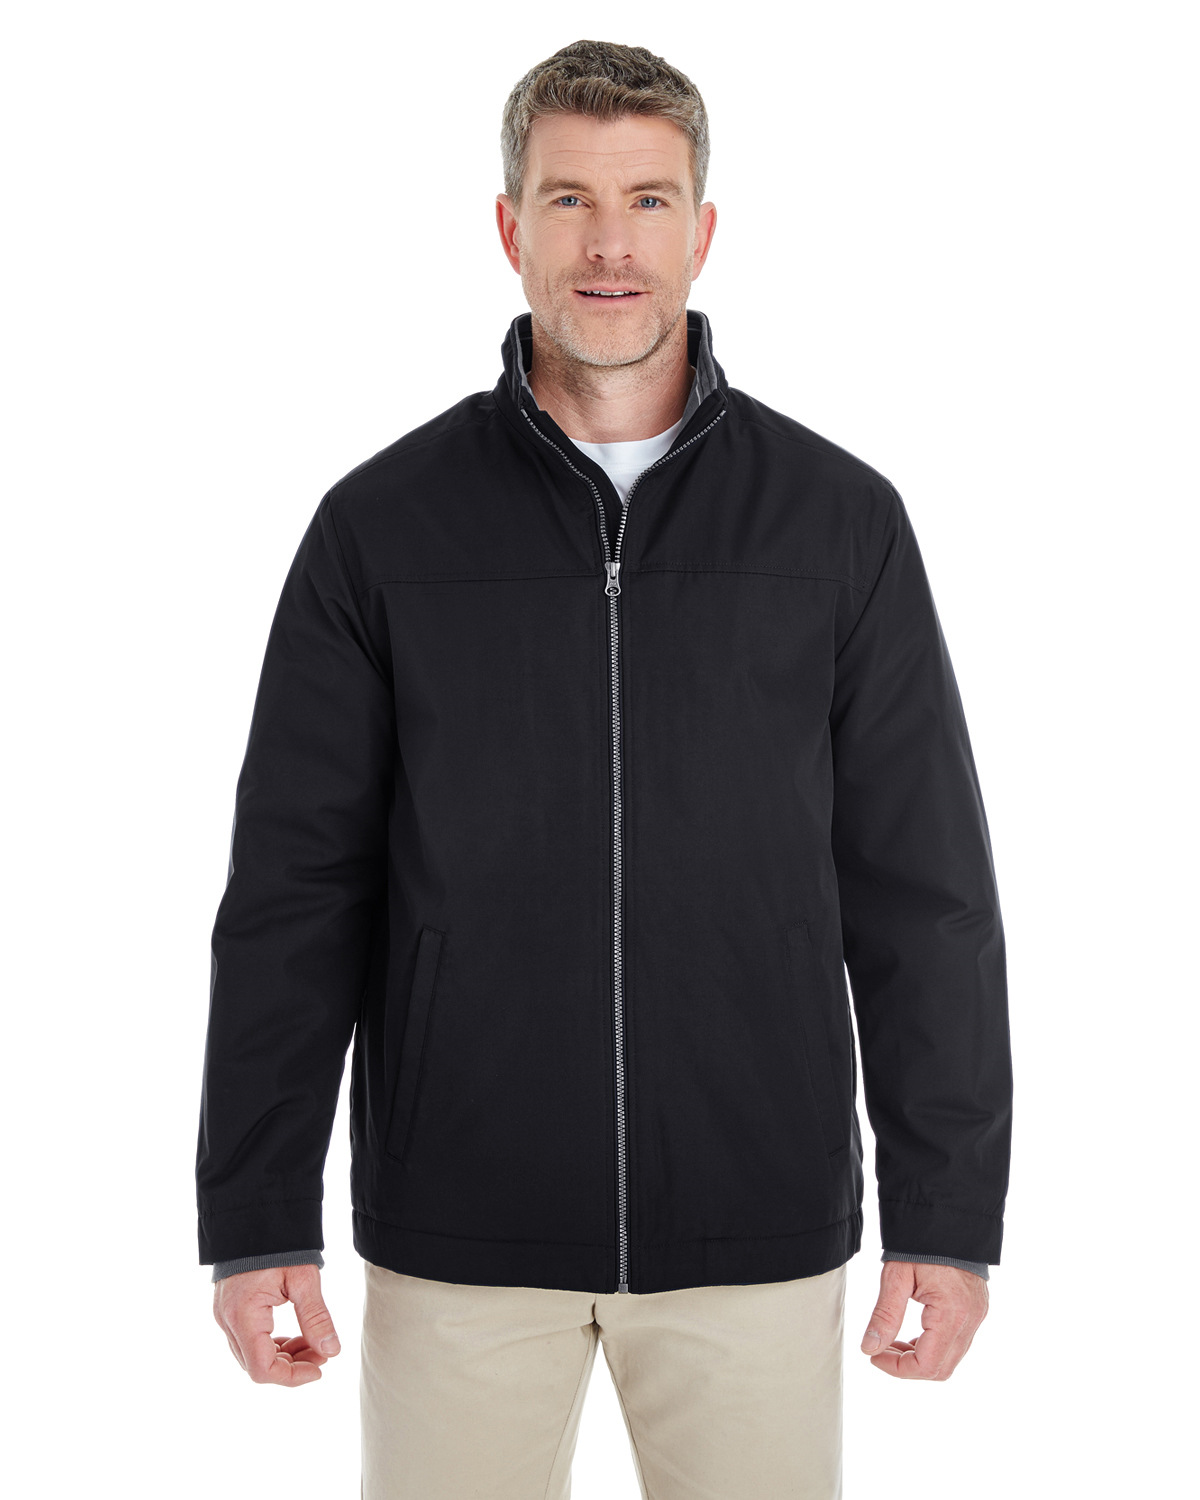 Men's Hartford All-Season Club Jacket